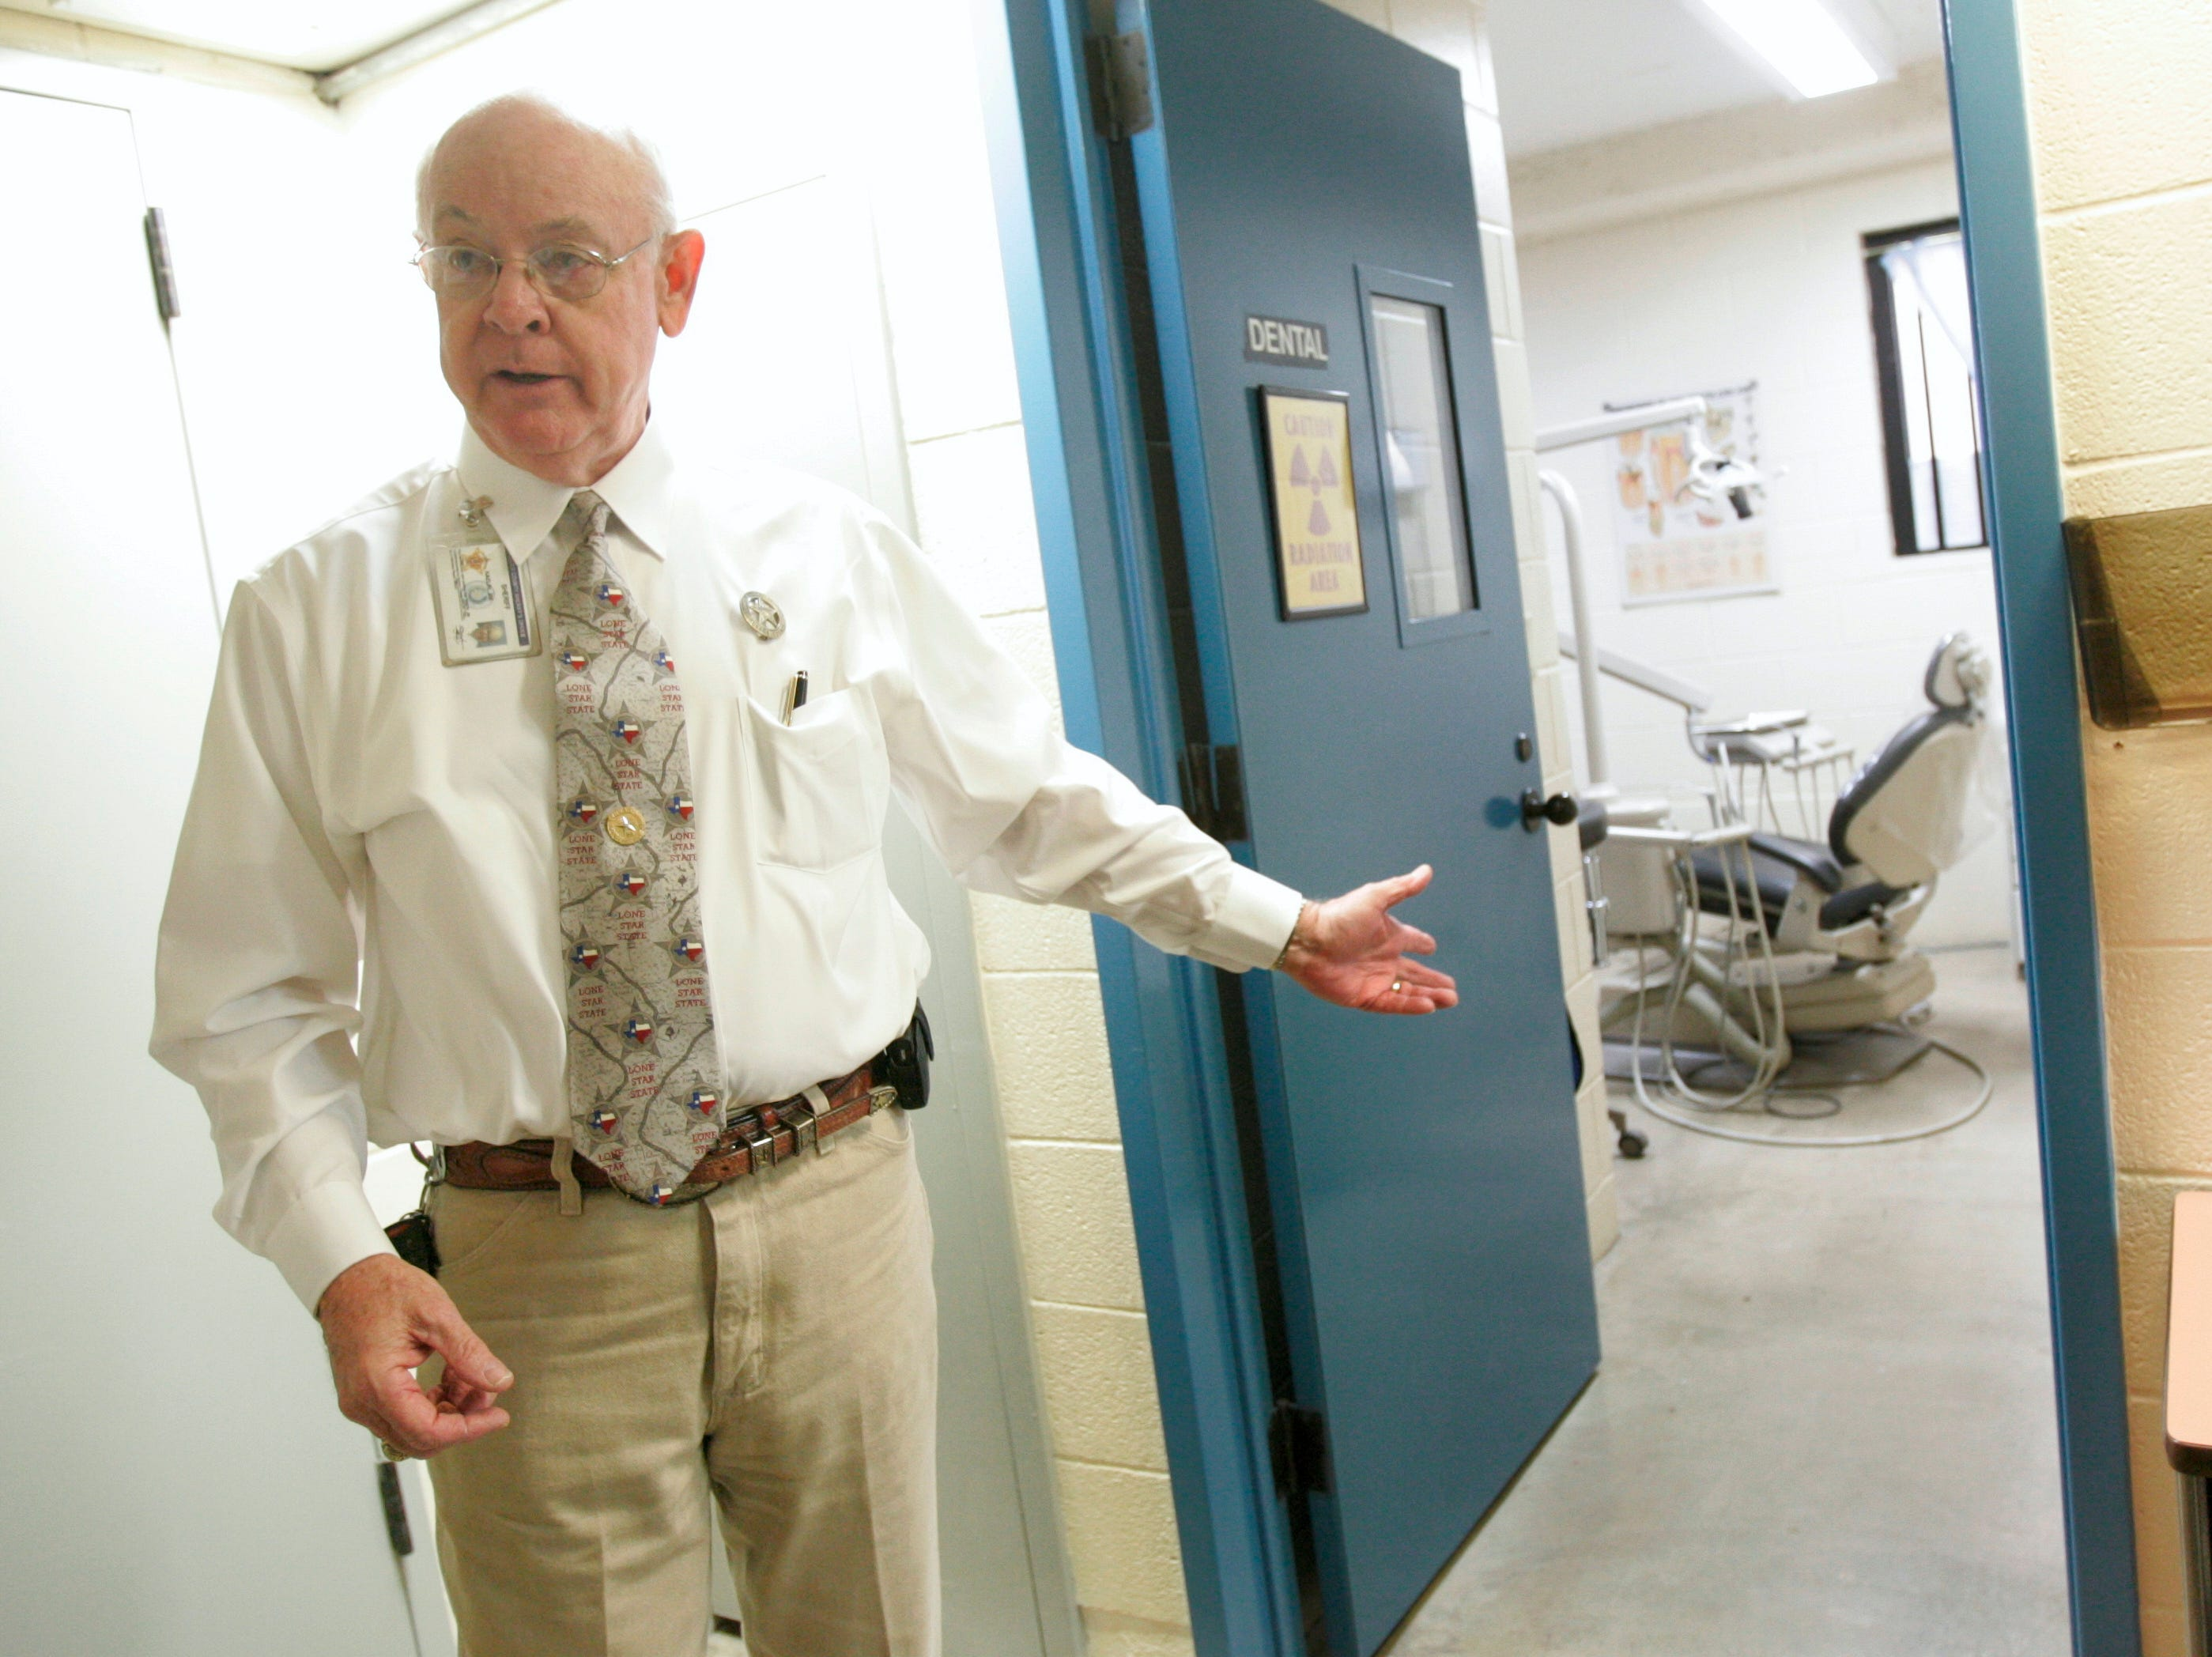 Nueces County Sheriff Jim Kaelin shows their medical facilities, including dental chairs and an x-ray machine Thursday, Nov. 12, 2009 at the Nueces County Jail in Corpus Christi.